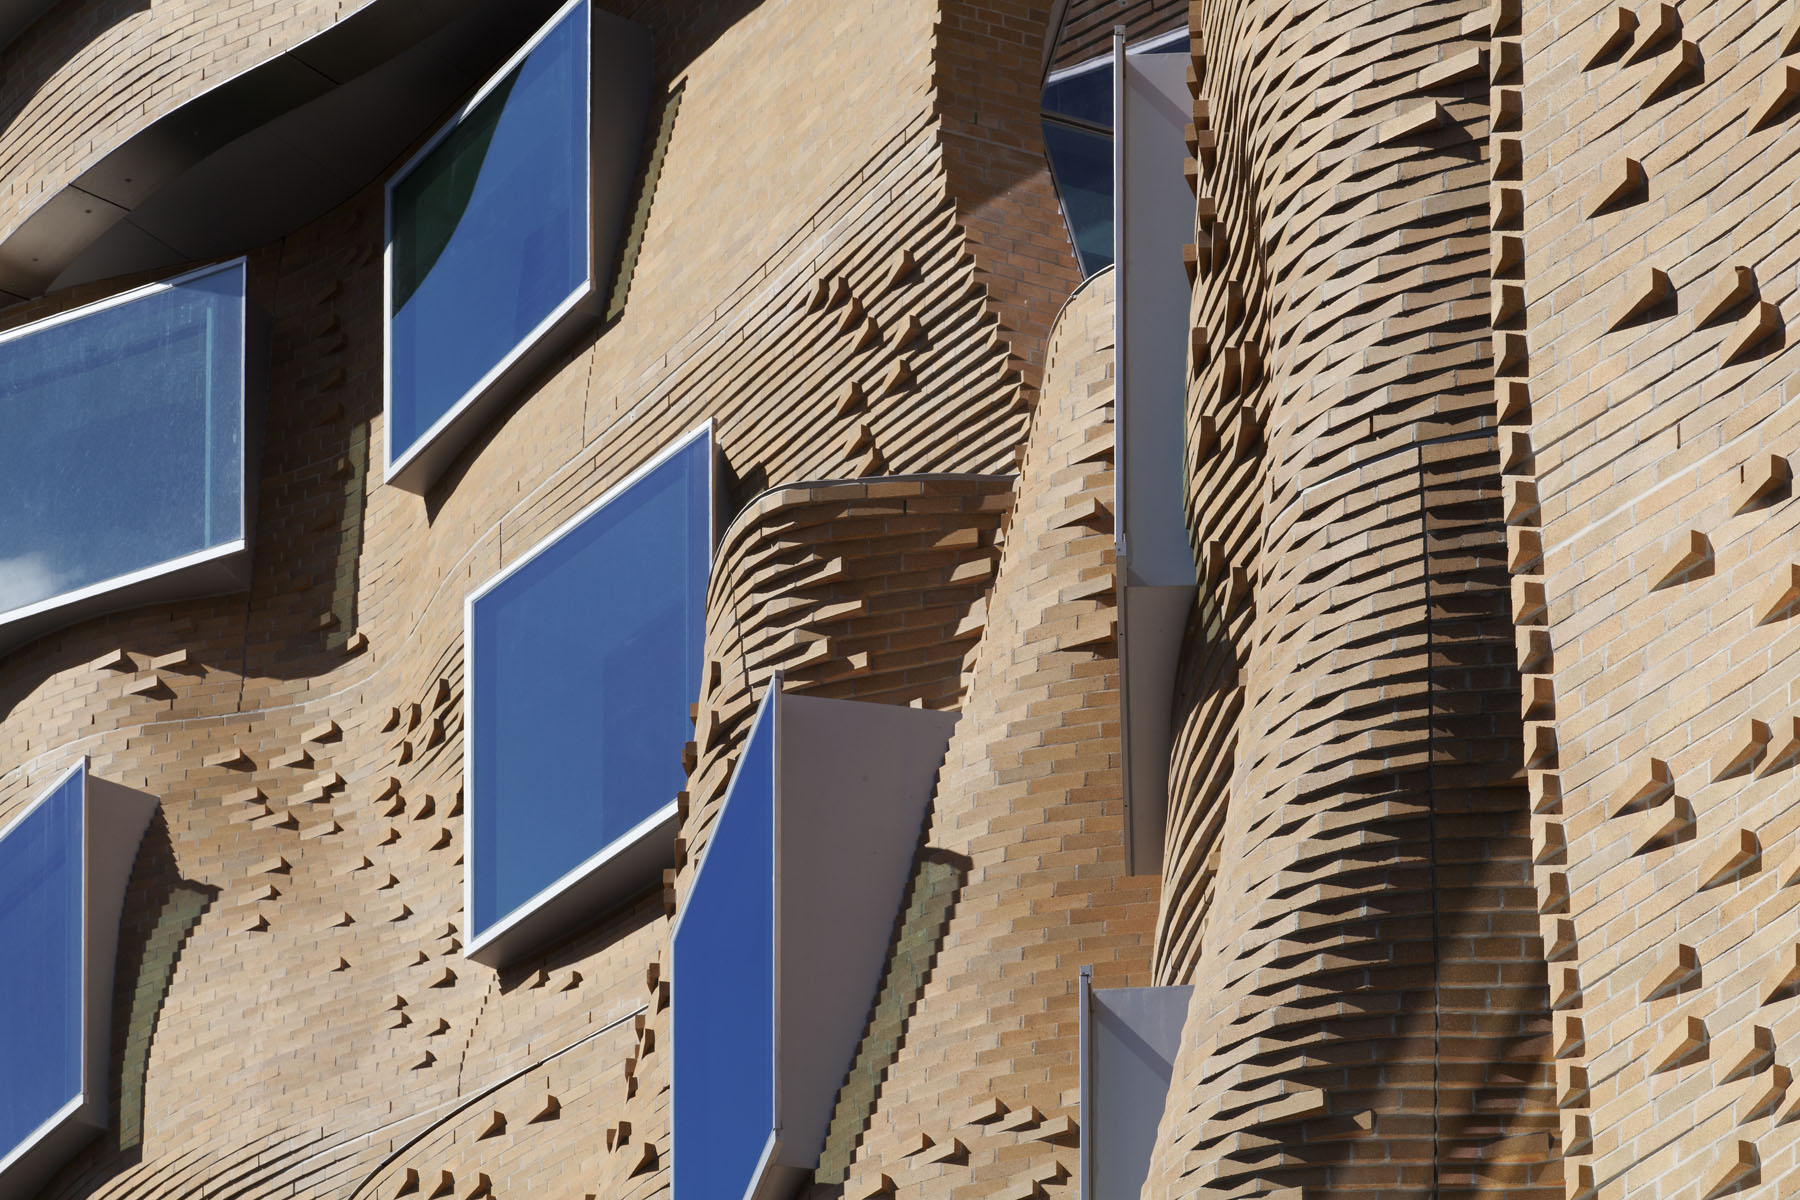 Mary Anne Street - North Canyon. Achieving the fluid appearance of the brickwork proved a technical feat that involved corbelling (stepping) individual bricks to articulate the building's organic shape. The light-coloured bricks – around 320,000 in total